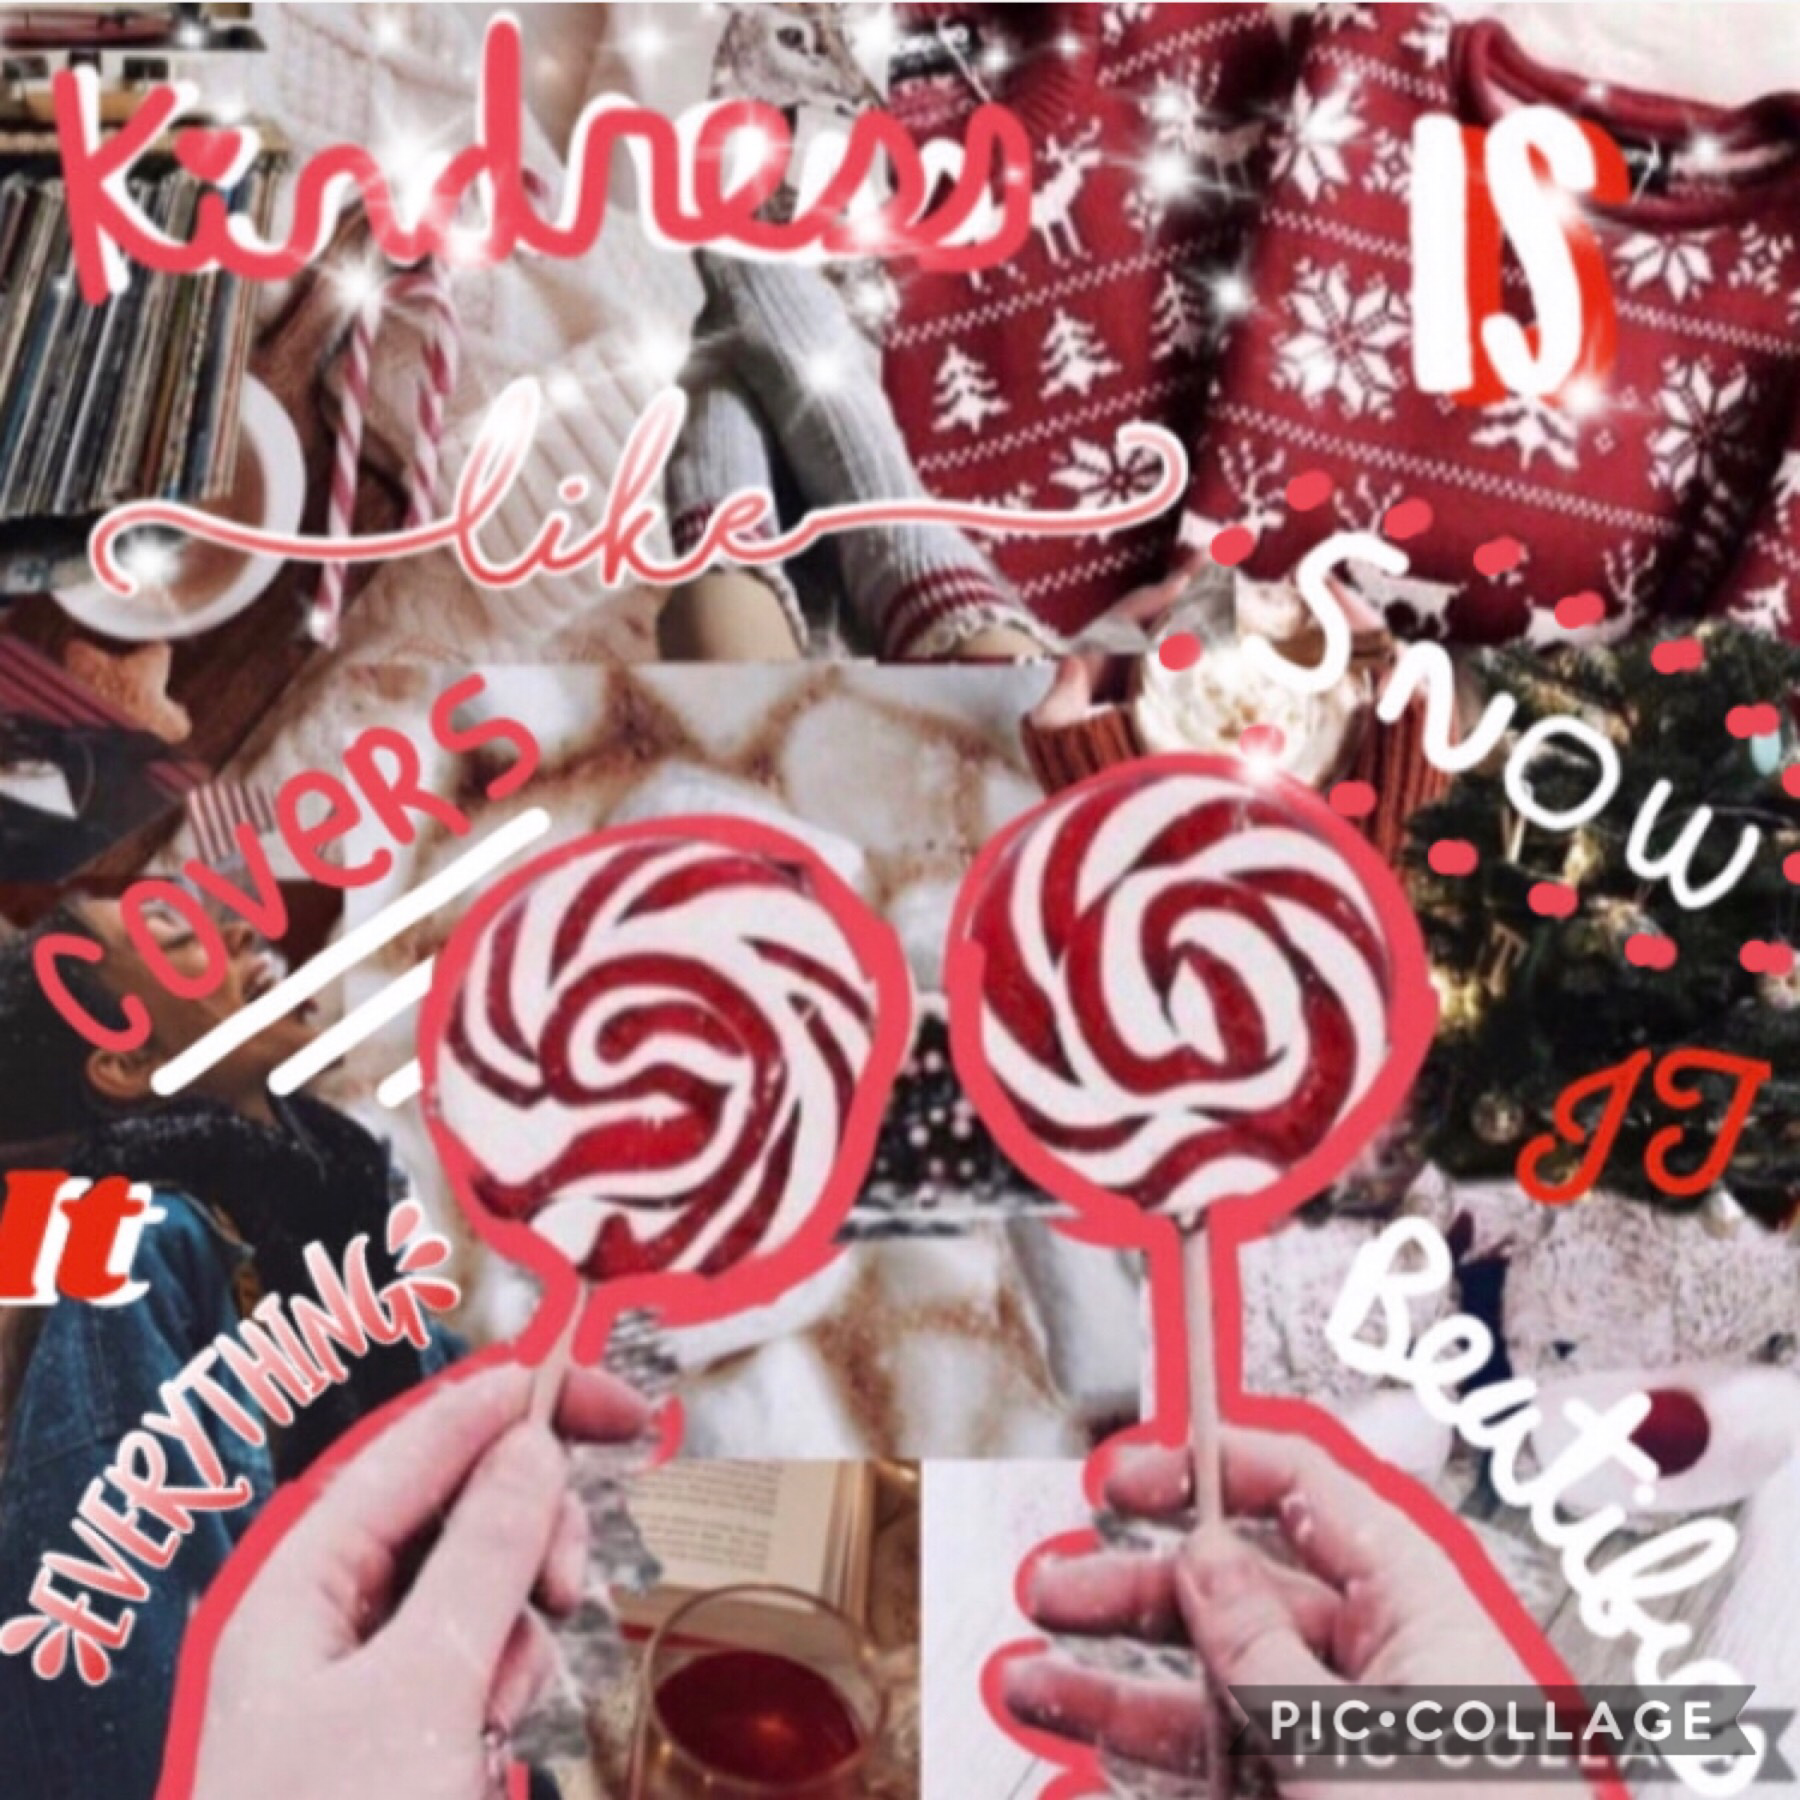 Tap for collab❤️❤️❤️ This is a collab with sunnyside-❣️ No joke since I joined pc she has been my pc idol so if you don't follow her I will be a sad human🤣🥺🥰 Anyway please rate out of ten I really like this one like SOOOOO MUCH! sunnyside did the literall